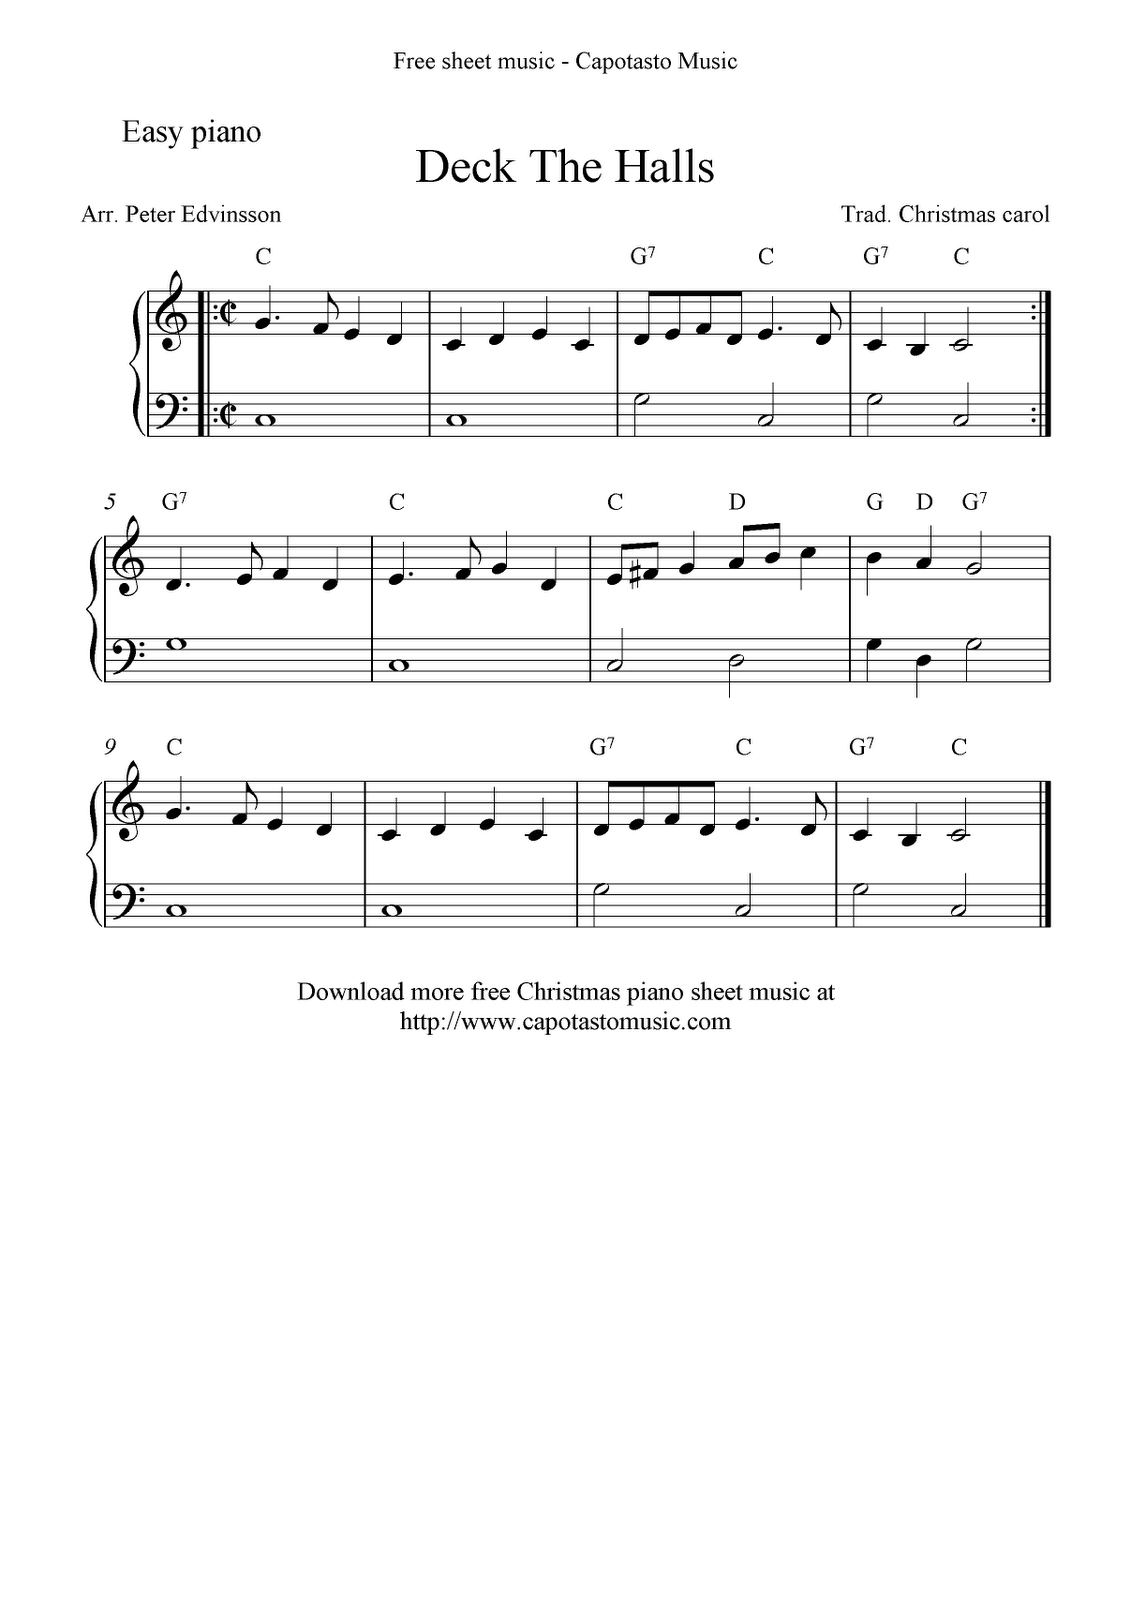 Deck the halls sheet music piano easy